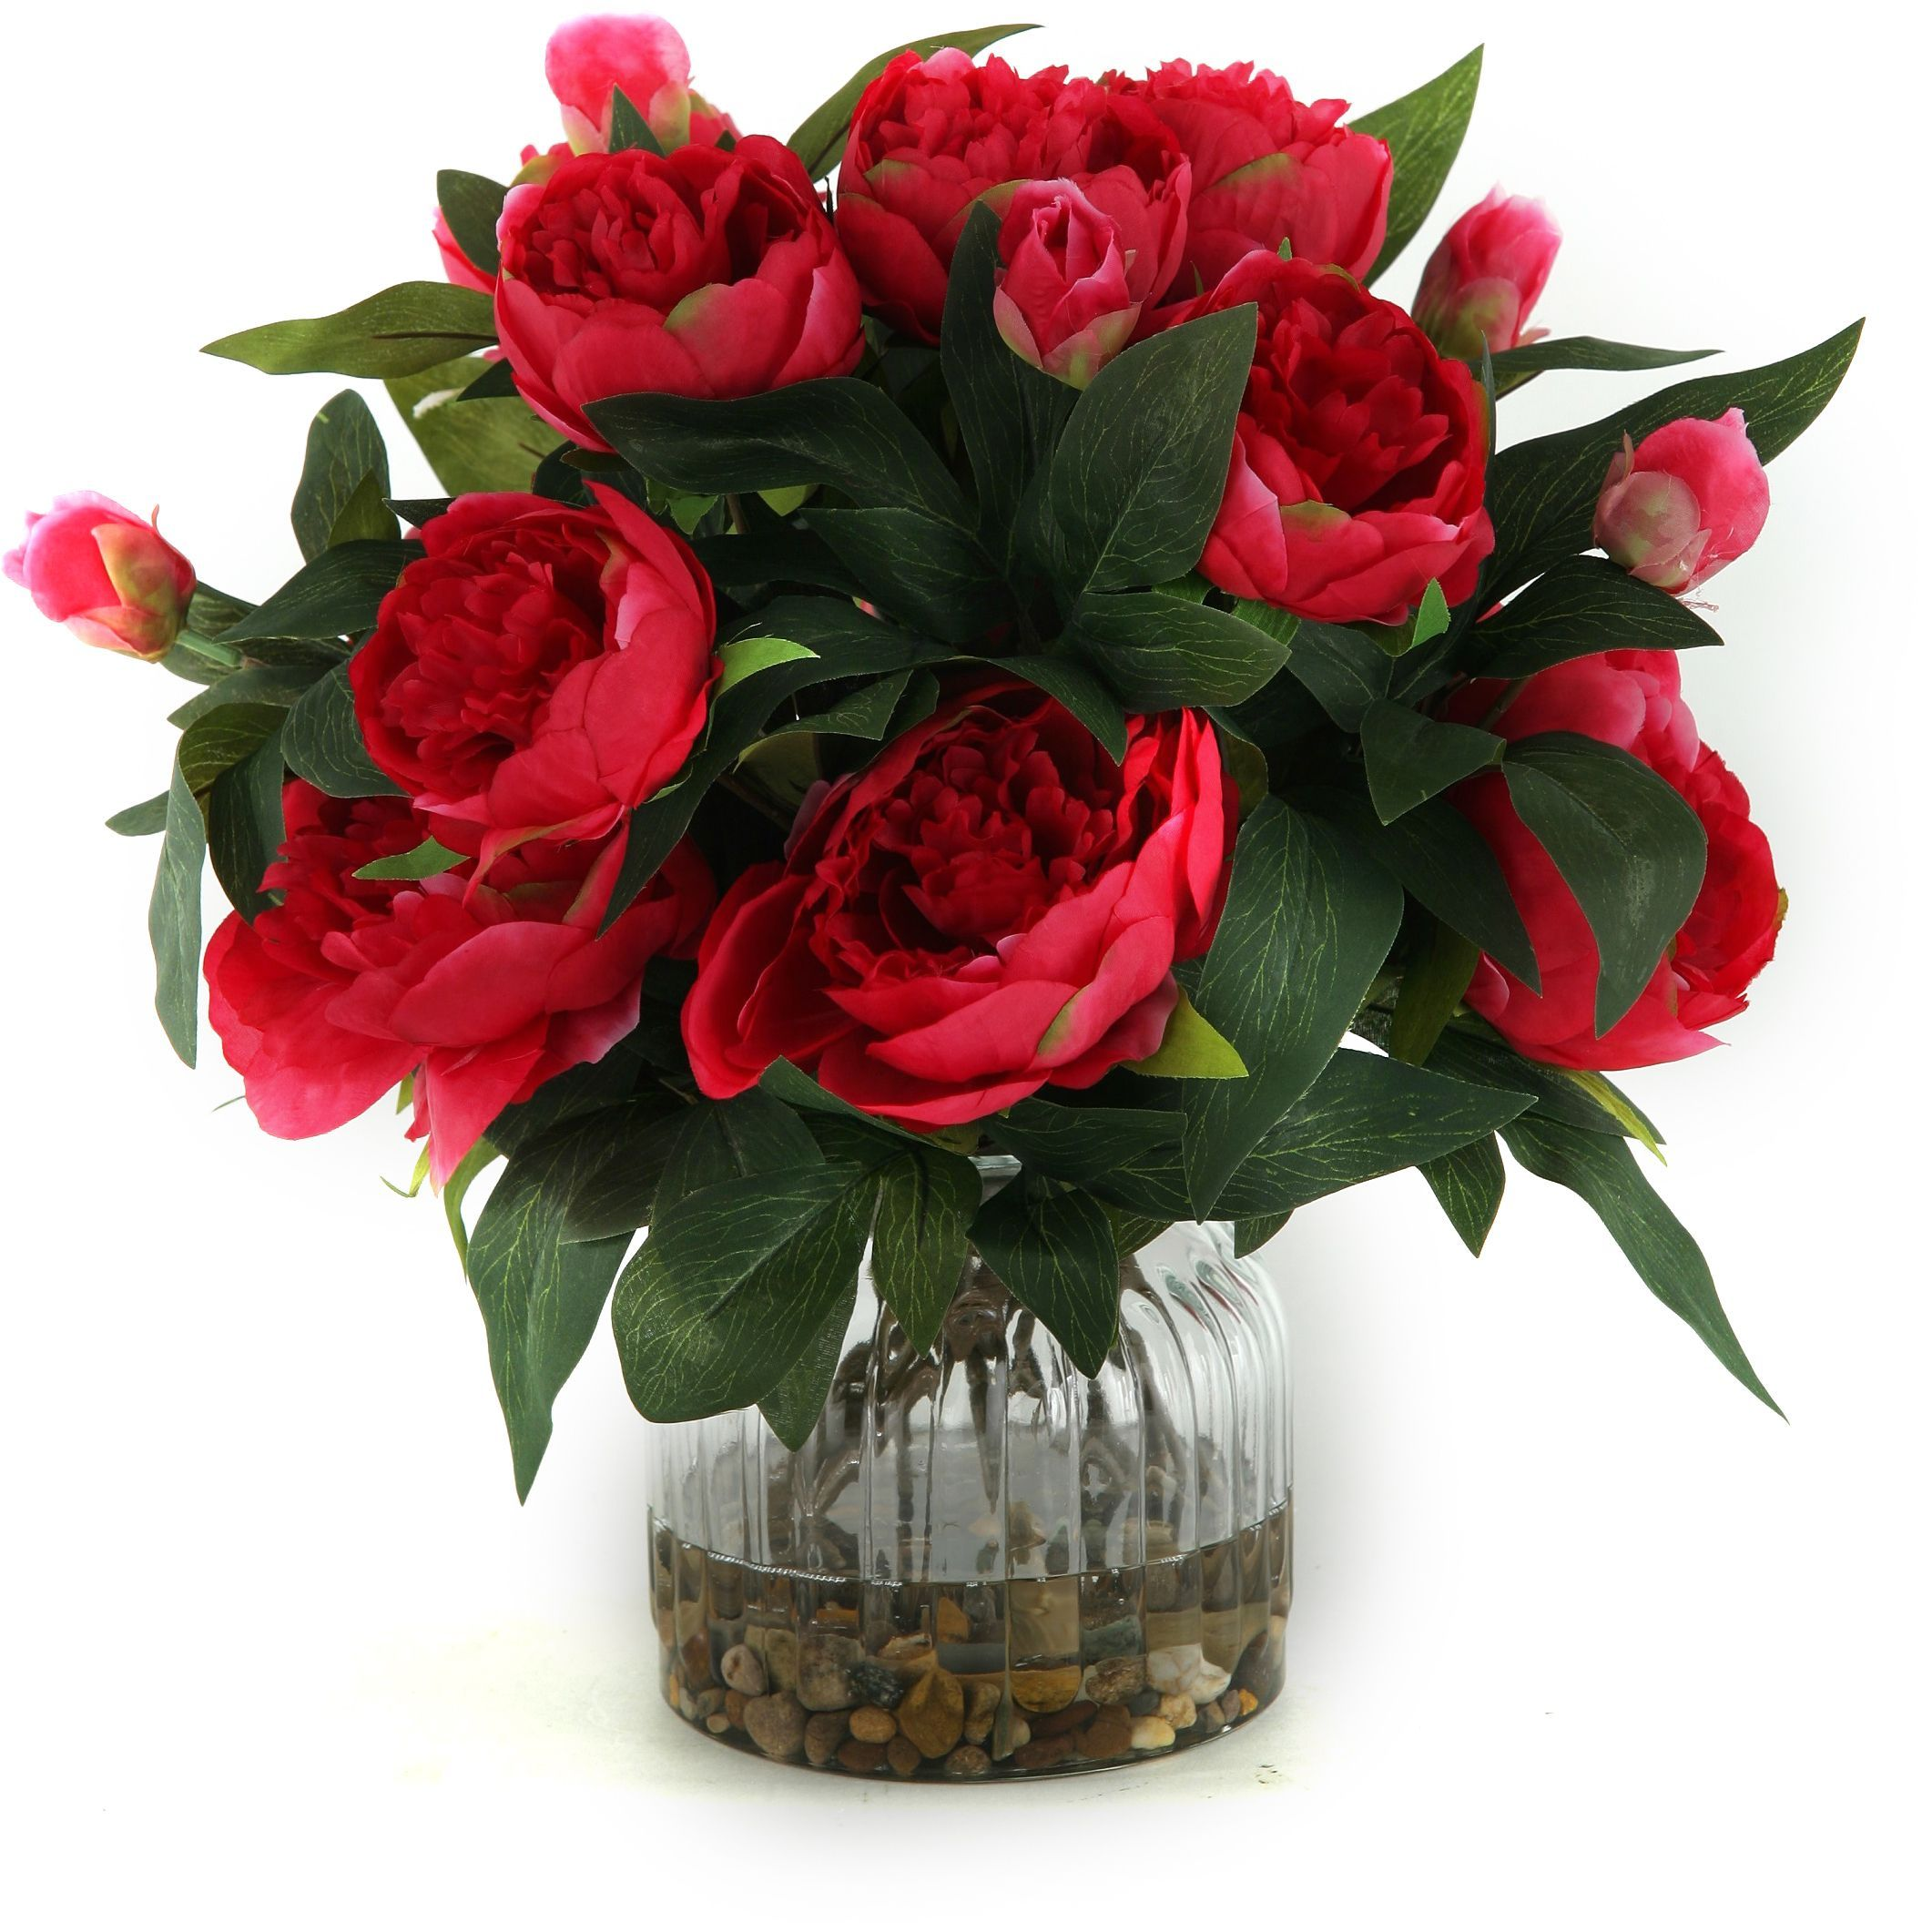 Overstock Com Online Shopping Bedding Furniture Electronics Jewelry Clothing More Artificial Flower Arrangements Fake Flower Arrangements Flower Arrangements